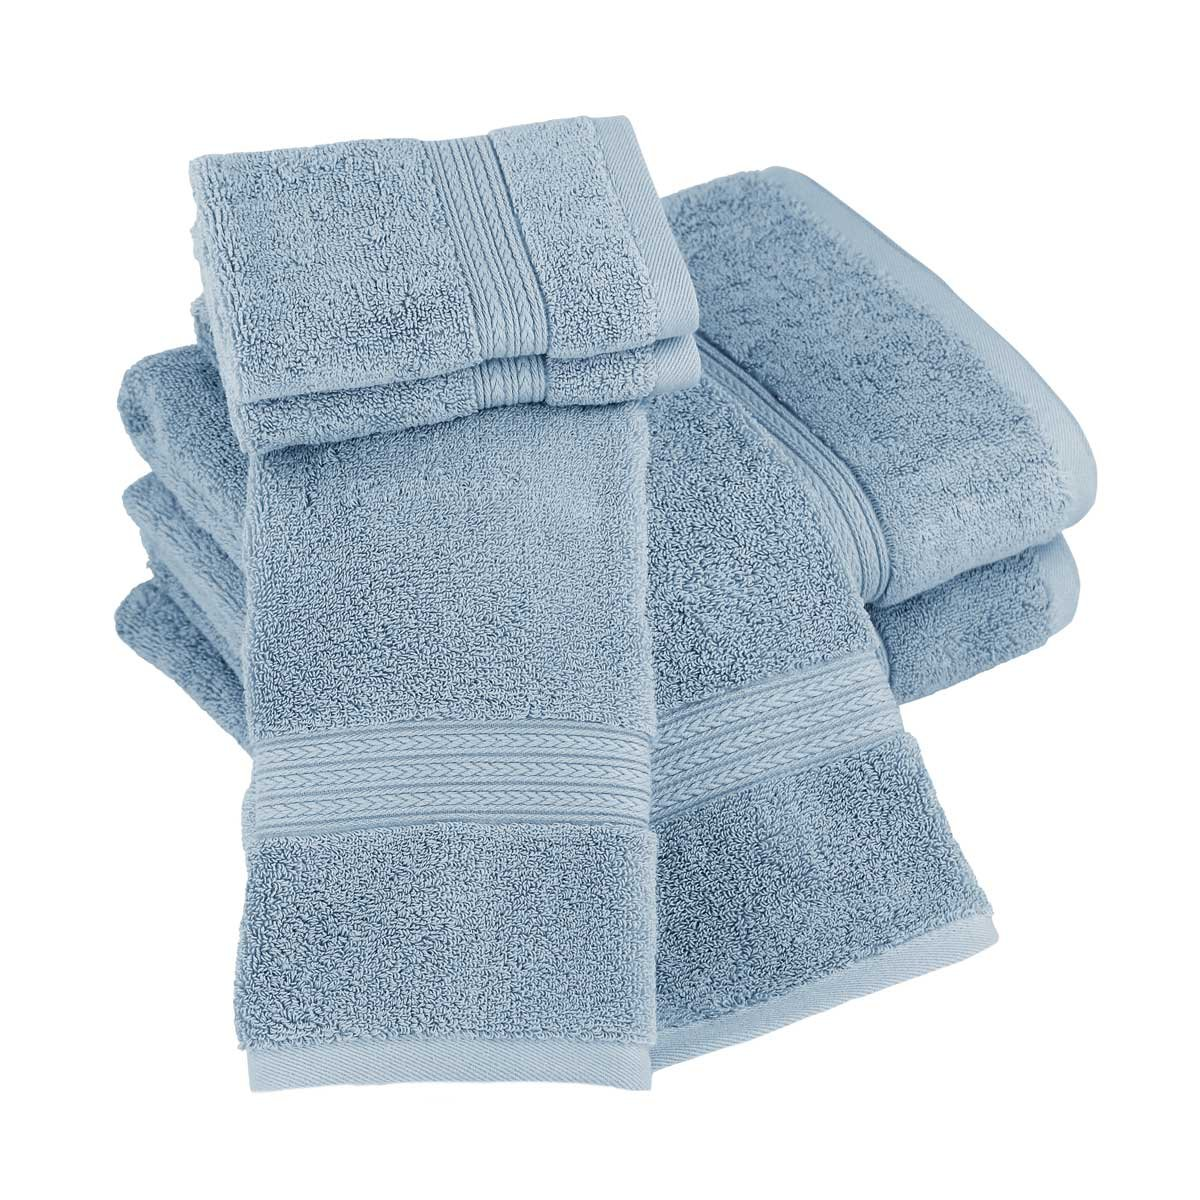 Luxor Linens New Arrival Bliss Collection Egyptian Cotton Classic 6-Piece Towel Set - Smoke Blue - with Gift Packaging by Luxor Linens (Image #3)